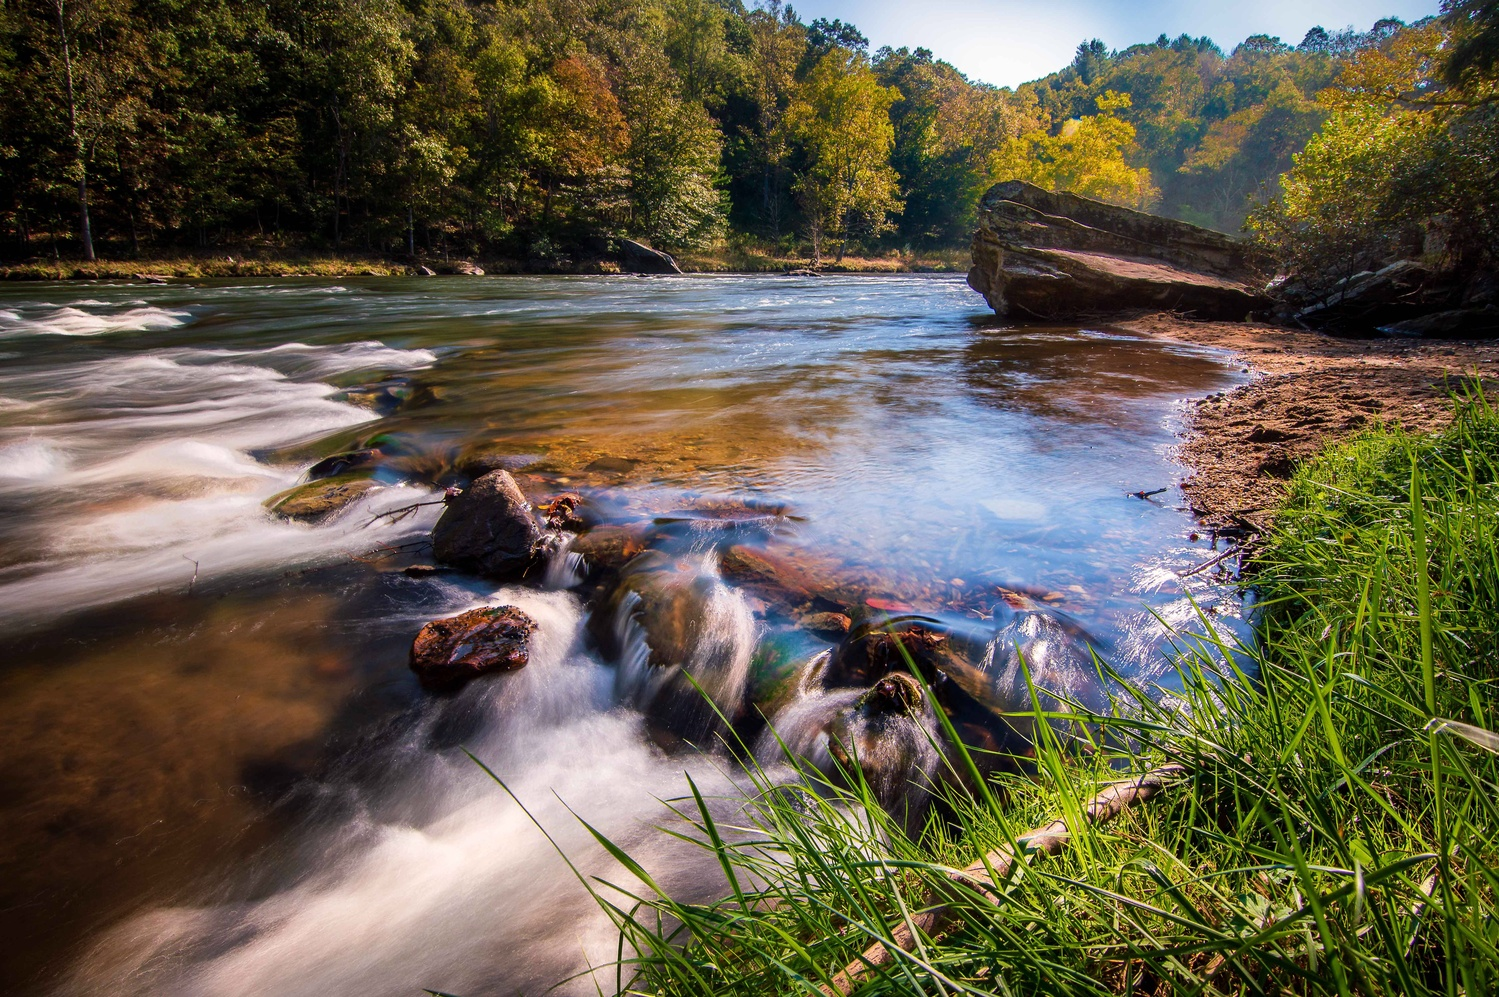 New River by Kyle Foreman